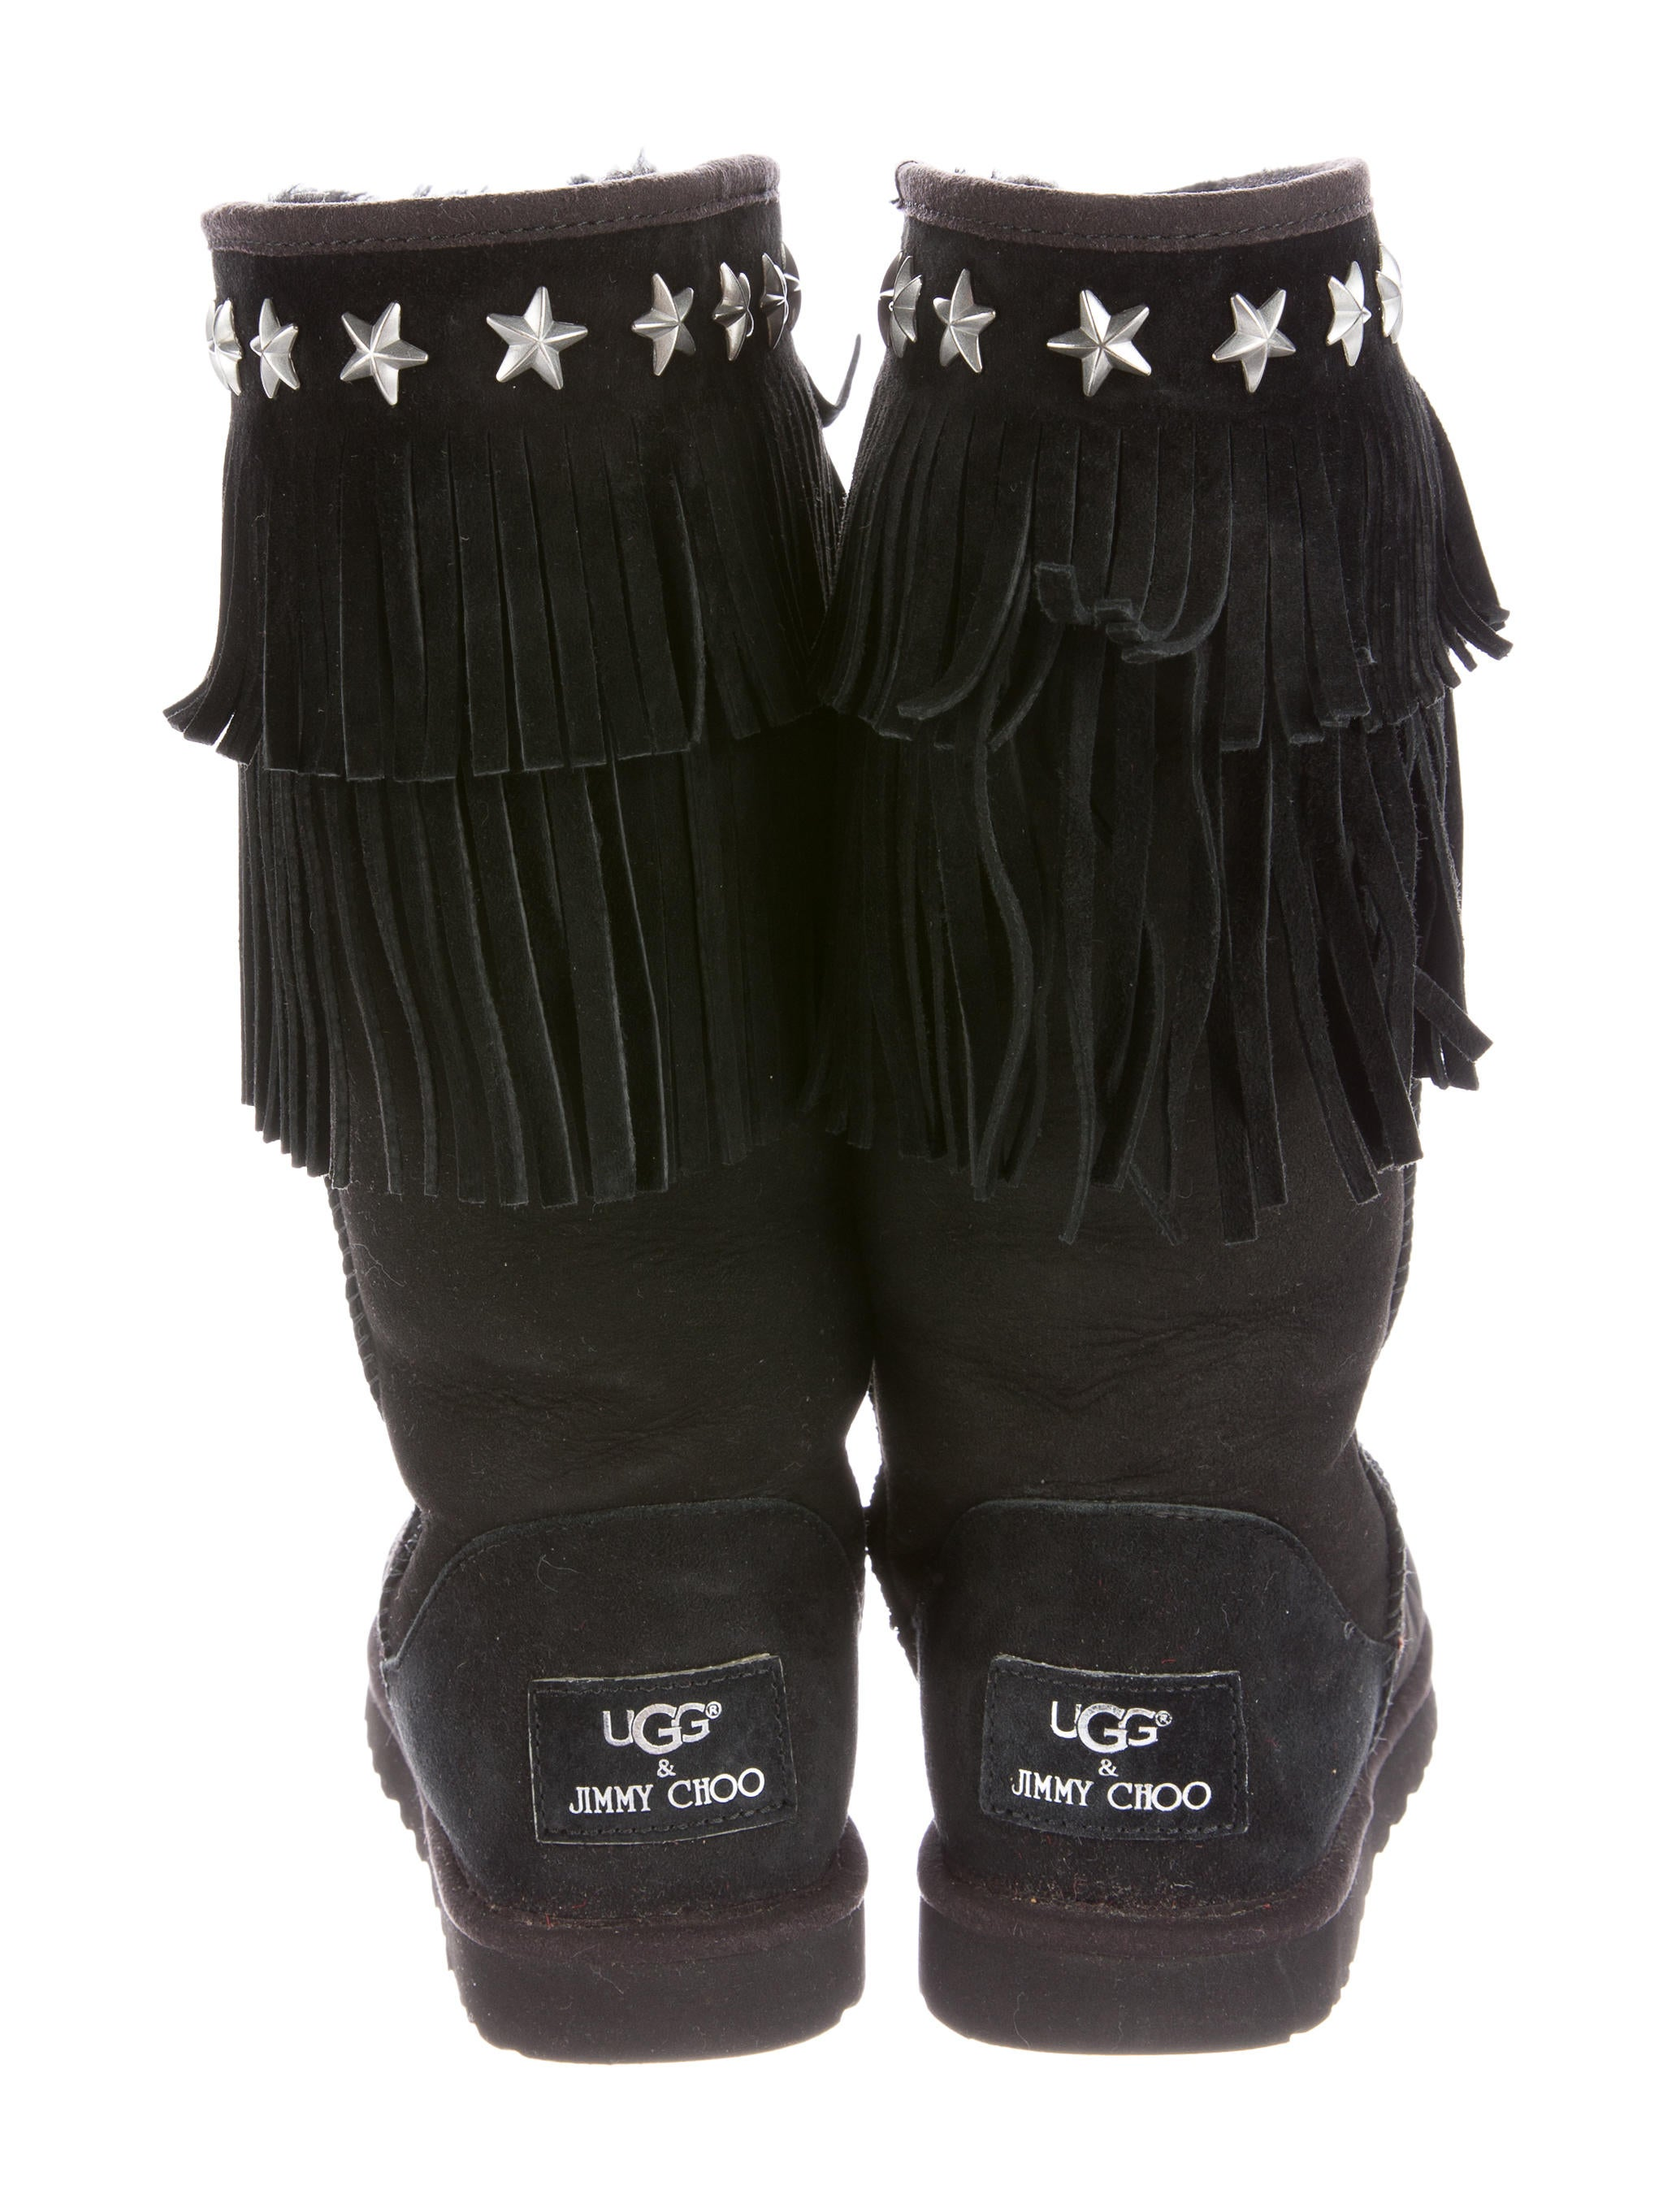 Ugg And Jimmy Choo Boots | Division of Global Affairs